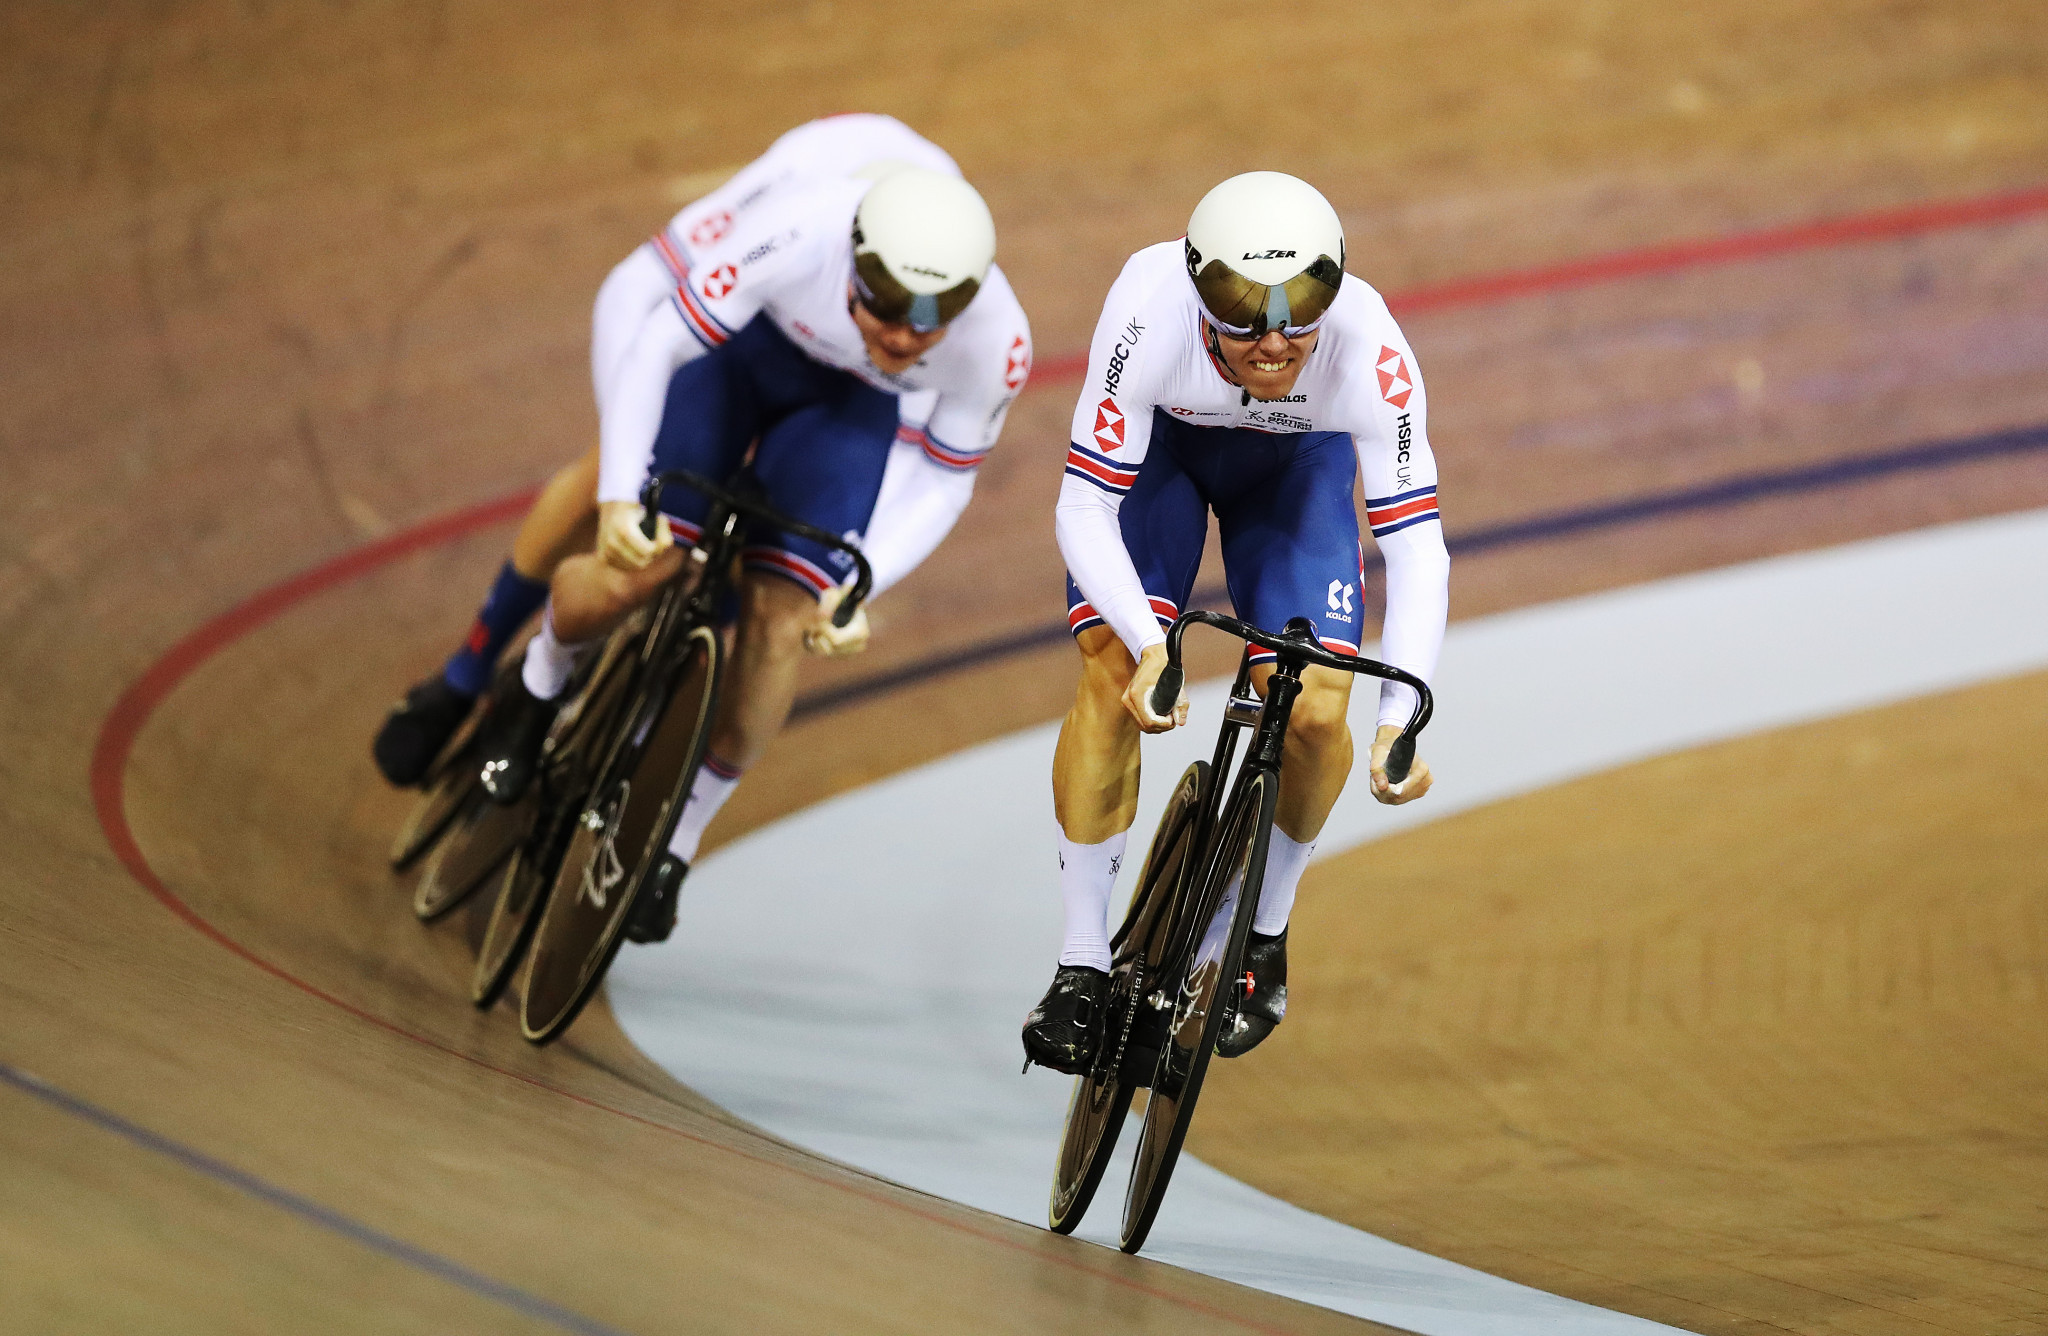 British Cycling restructures men's sprint coaching staff prior to Tokyo 2020 title defence